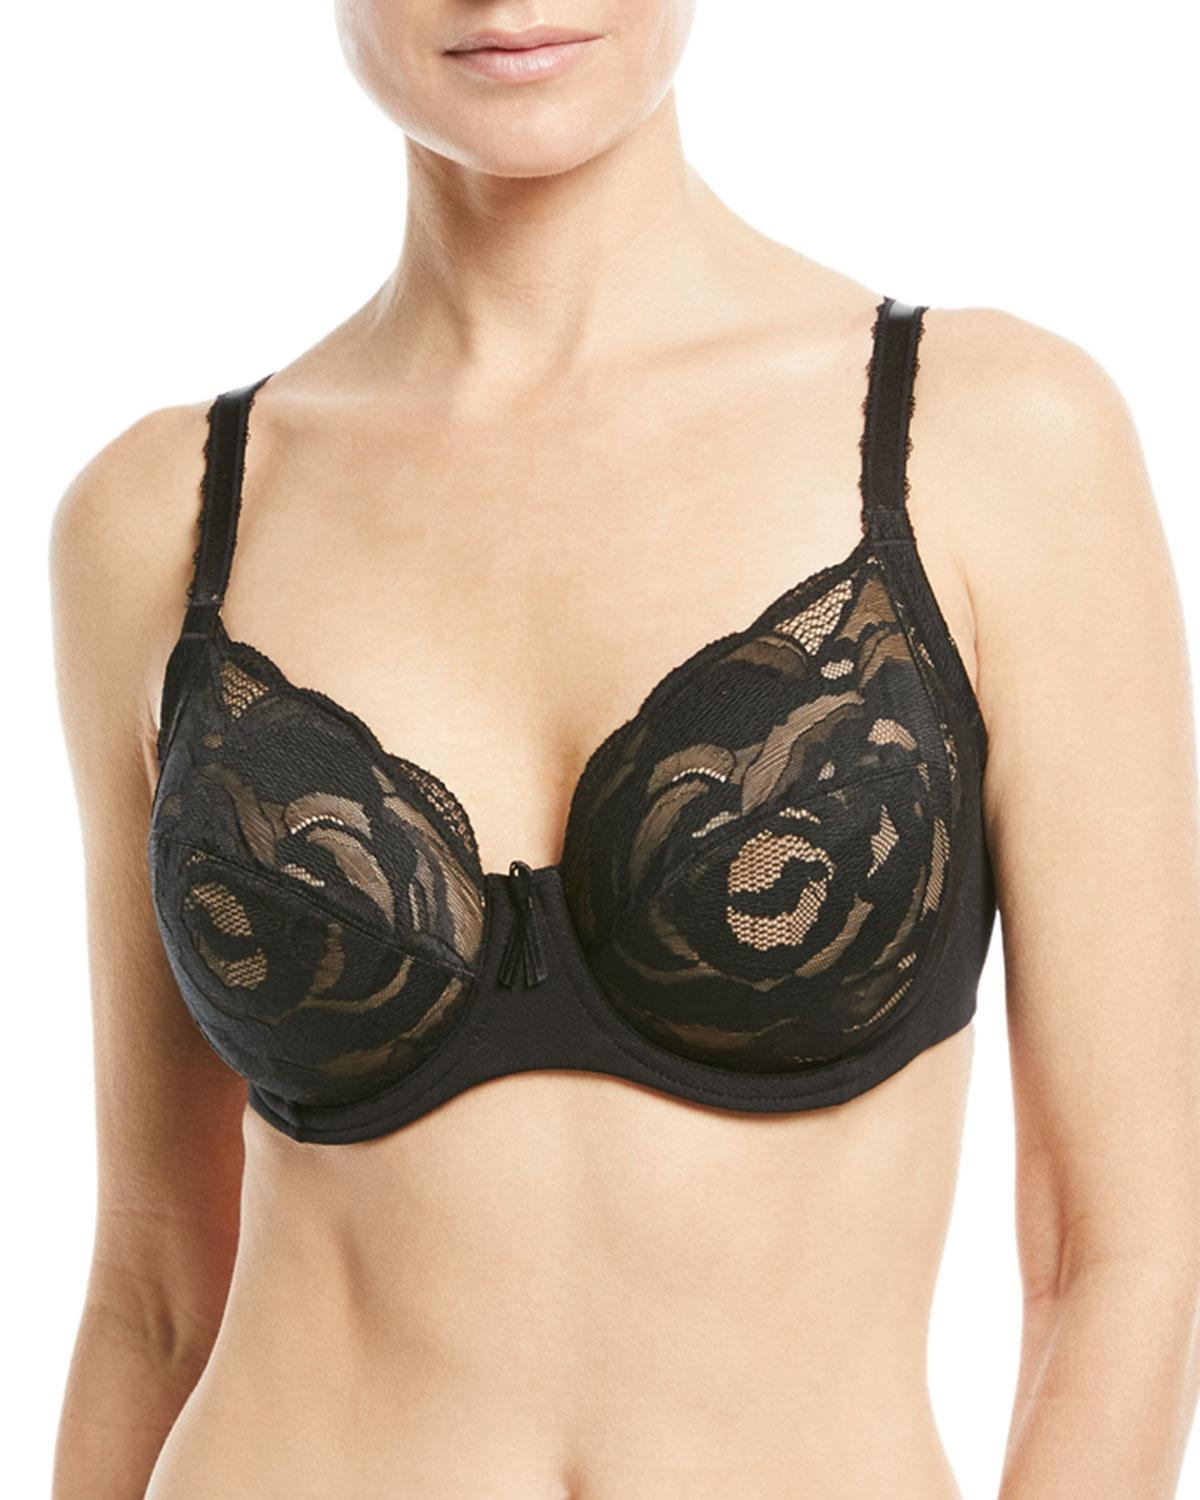 899c4aab99 Wacoal. Women s Black Top Tier Lace Underwire Bra.  60  18 From Bergdorf  Goodman